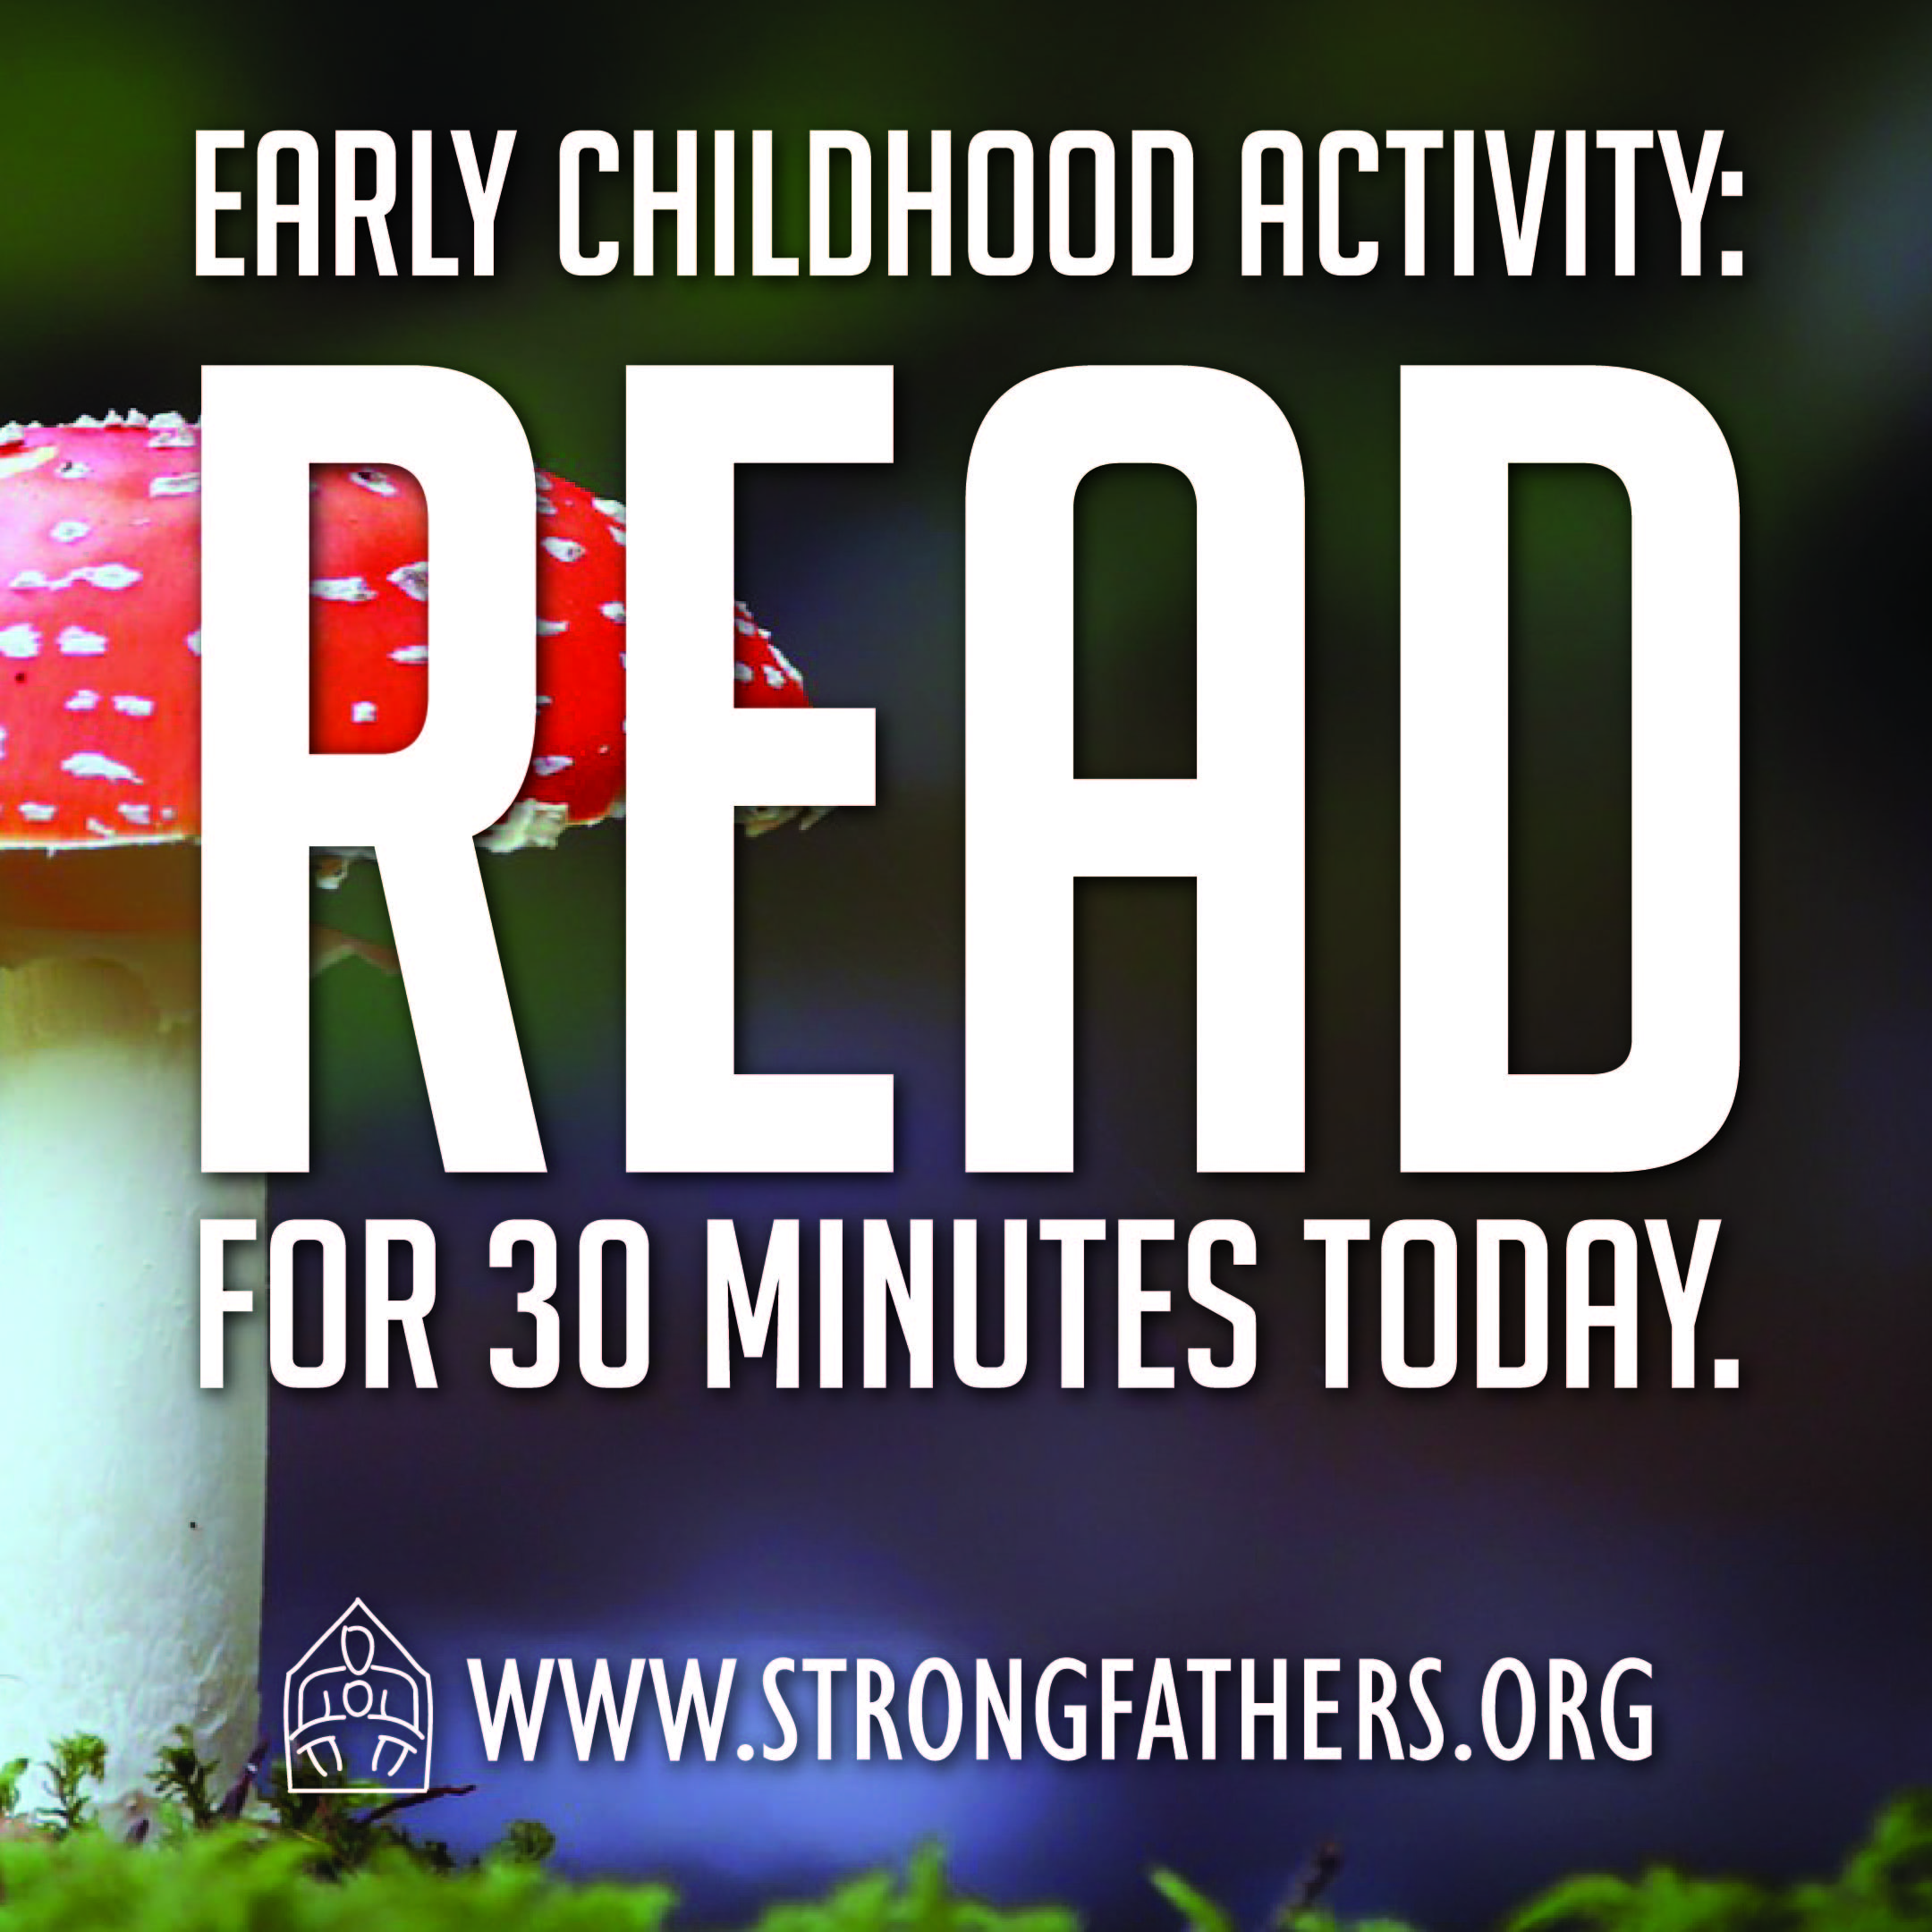 Read for 30 minutes today